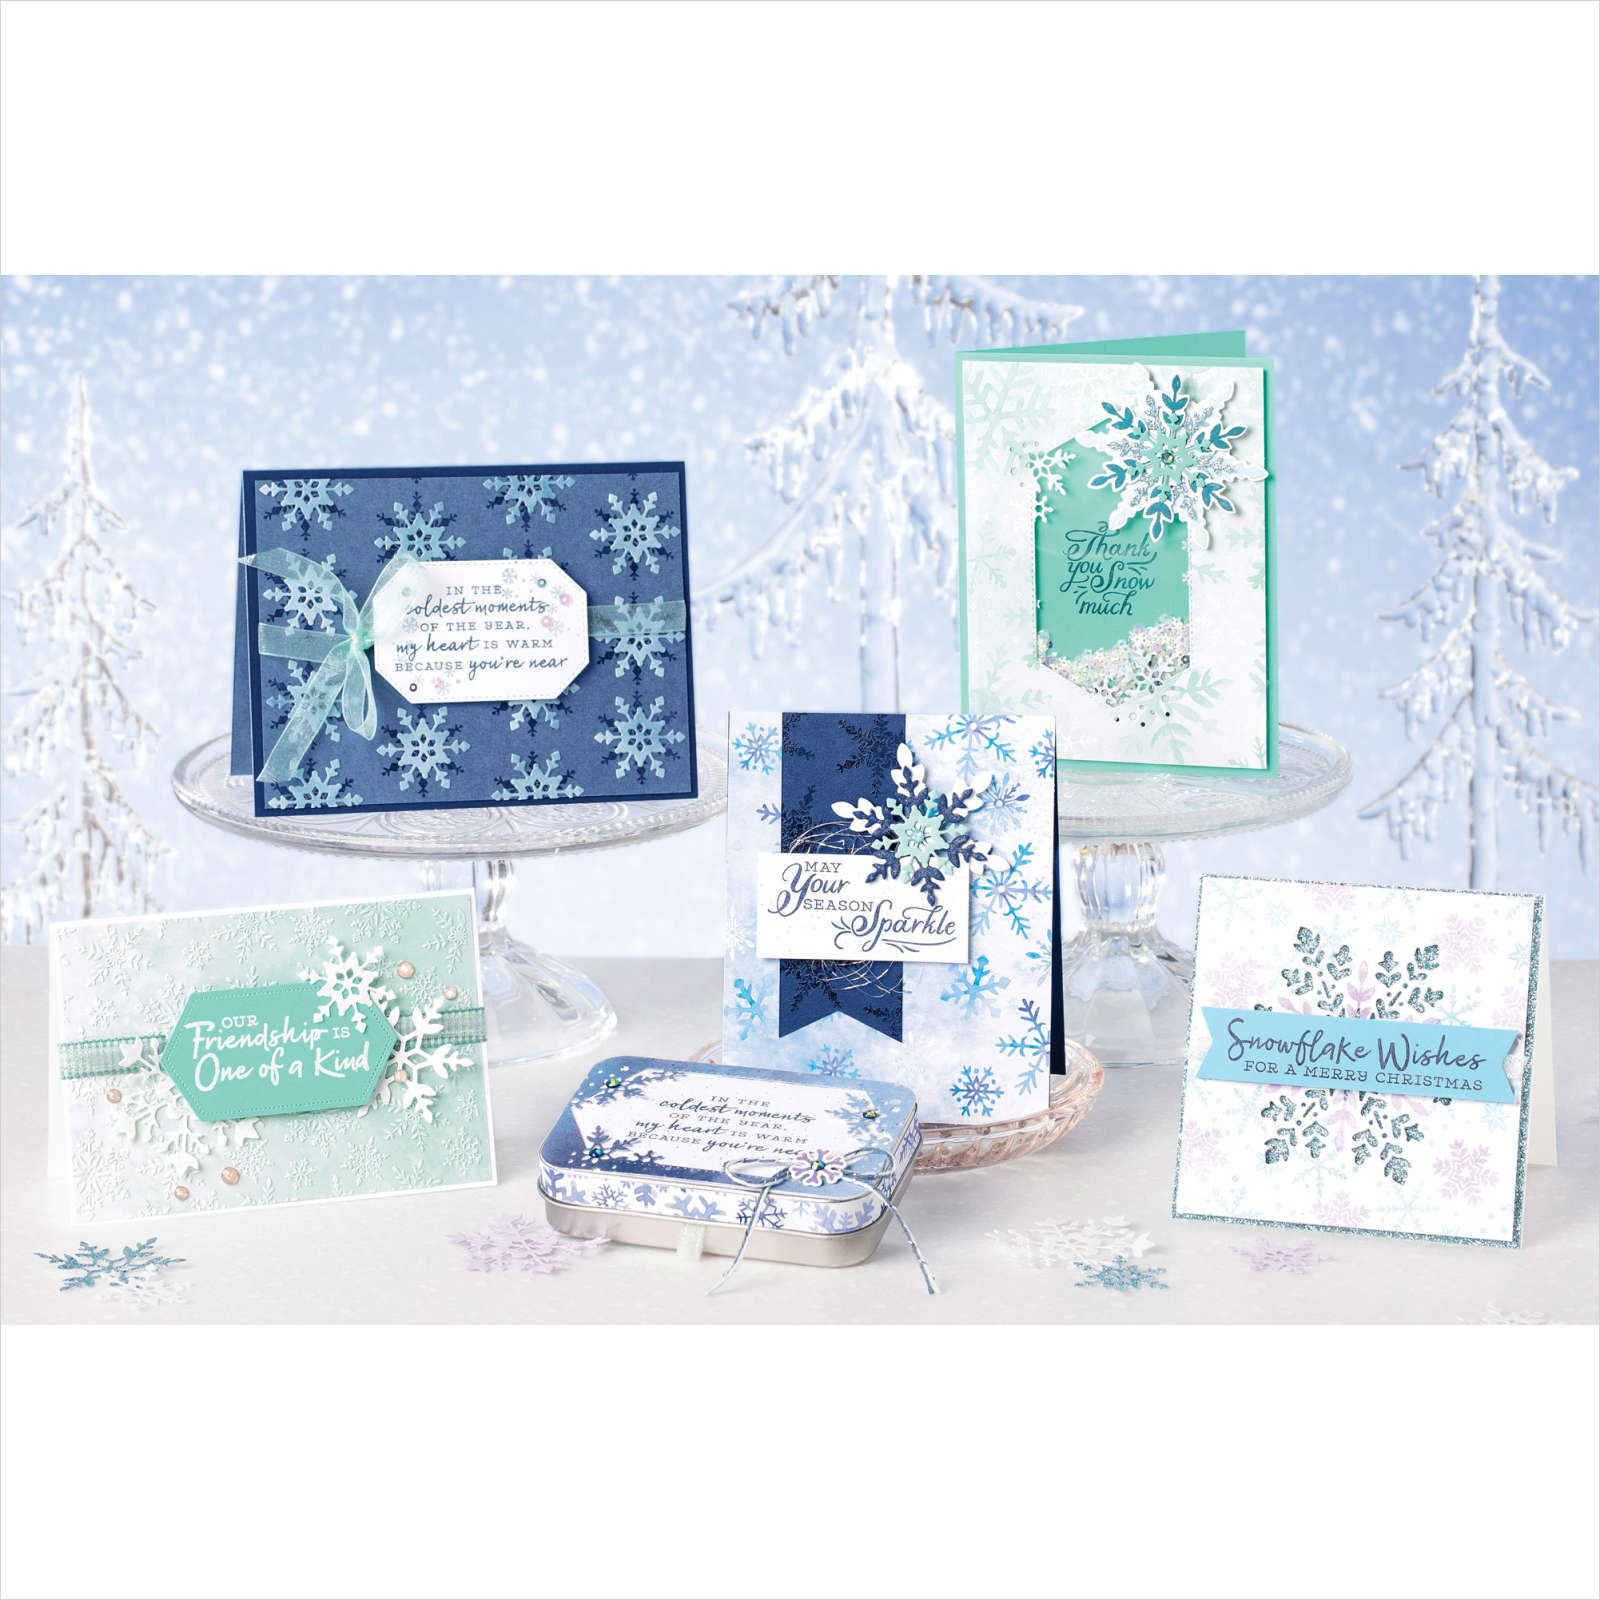 SNOWFLAKE WISHES BUNDLE (ENGLISH)